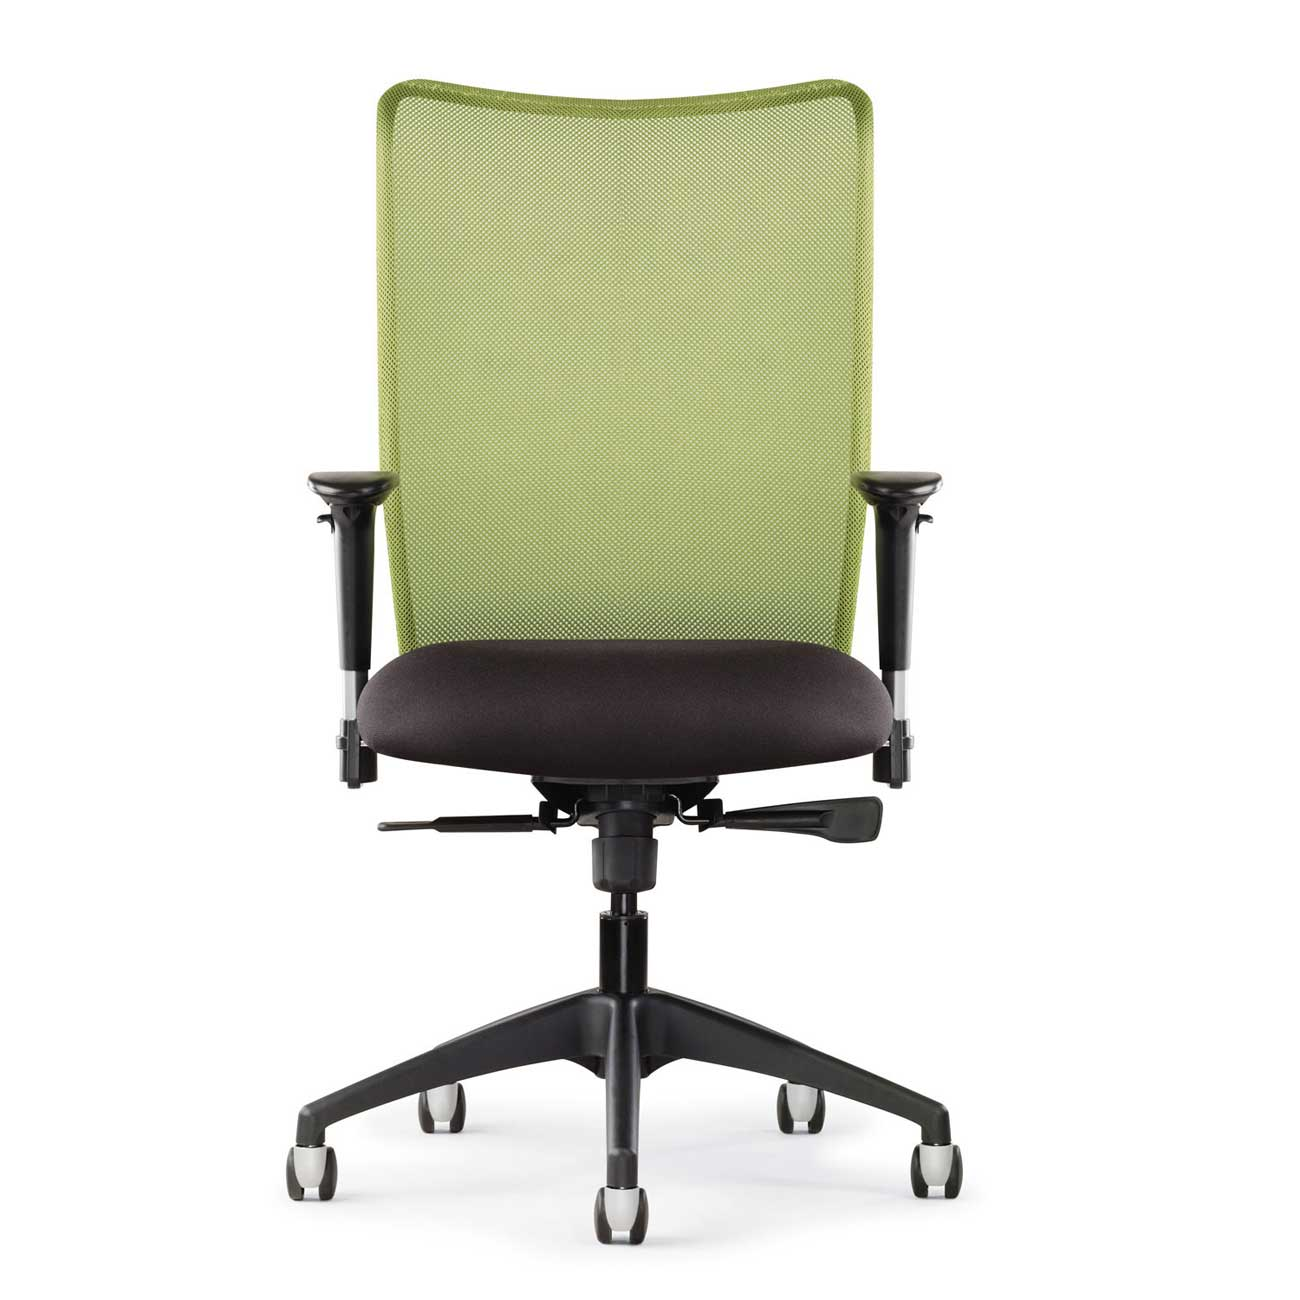 Expensive fice Chair for Employees